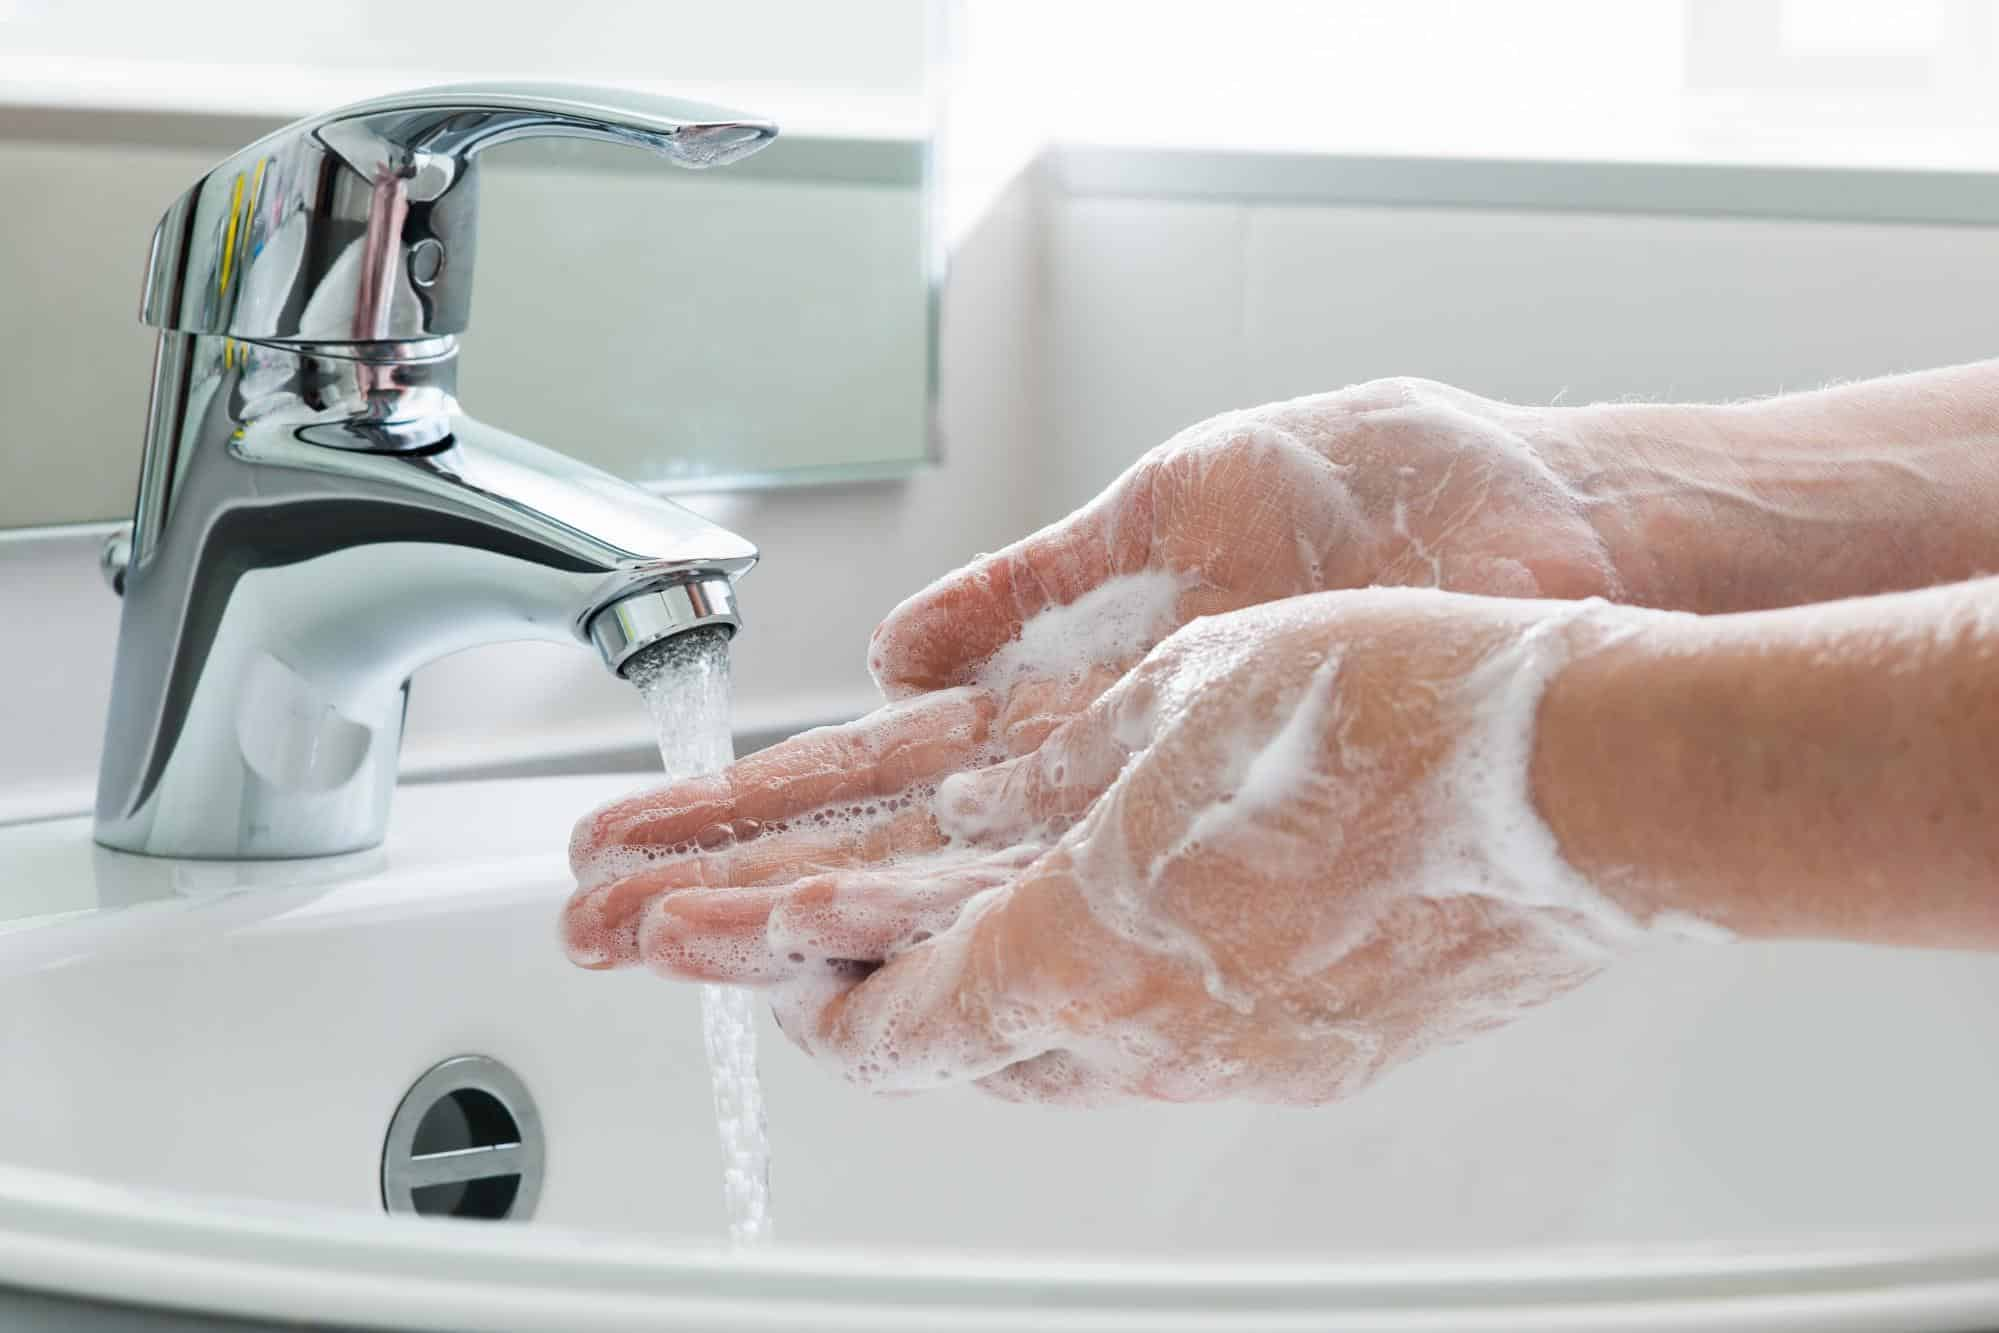 Washing hands with soap and water at bathroom sink